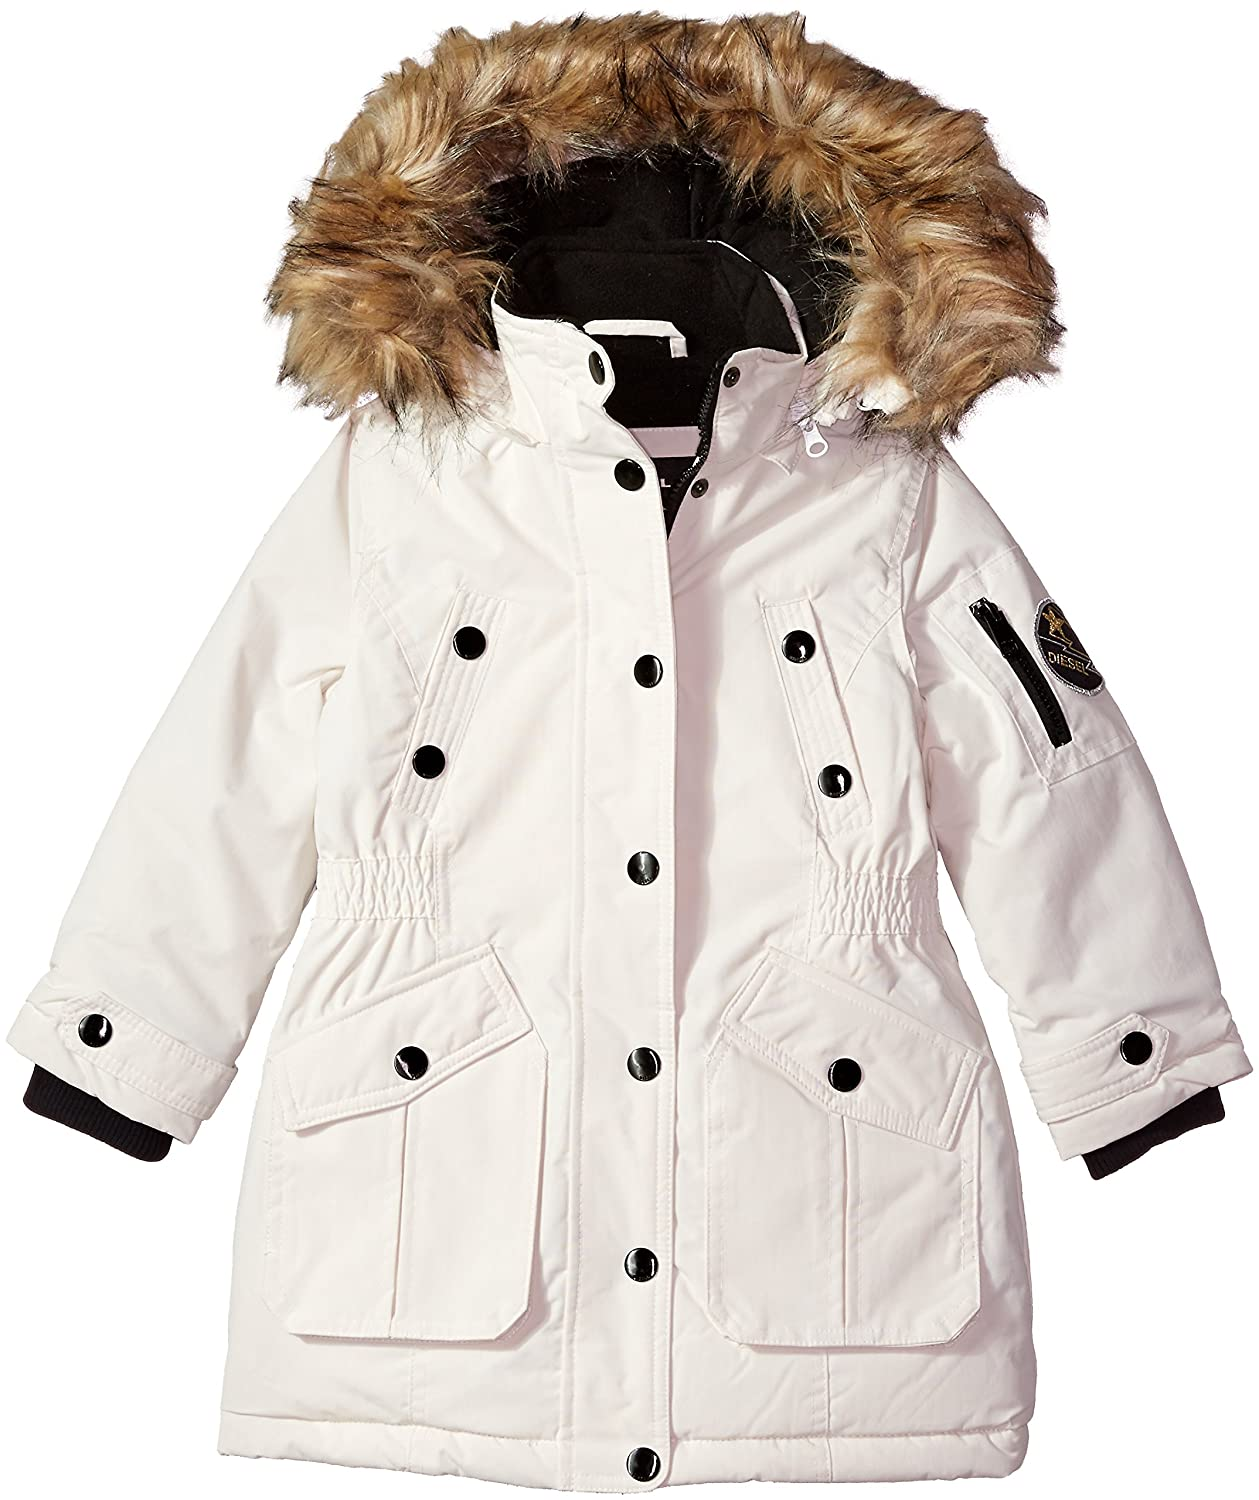 Girls Outerwear Jacket More Styles Available